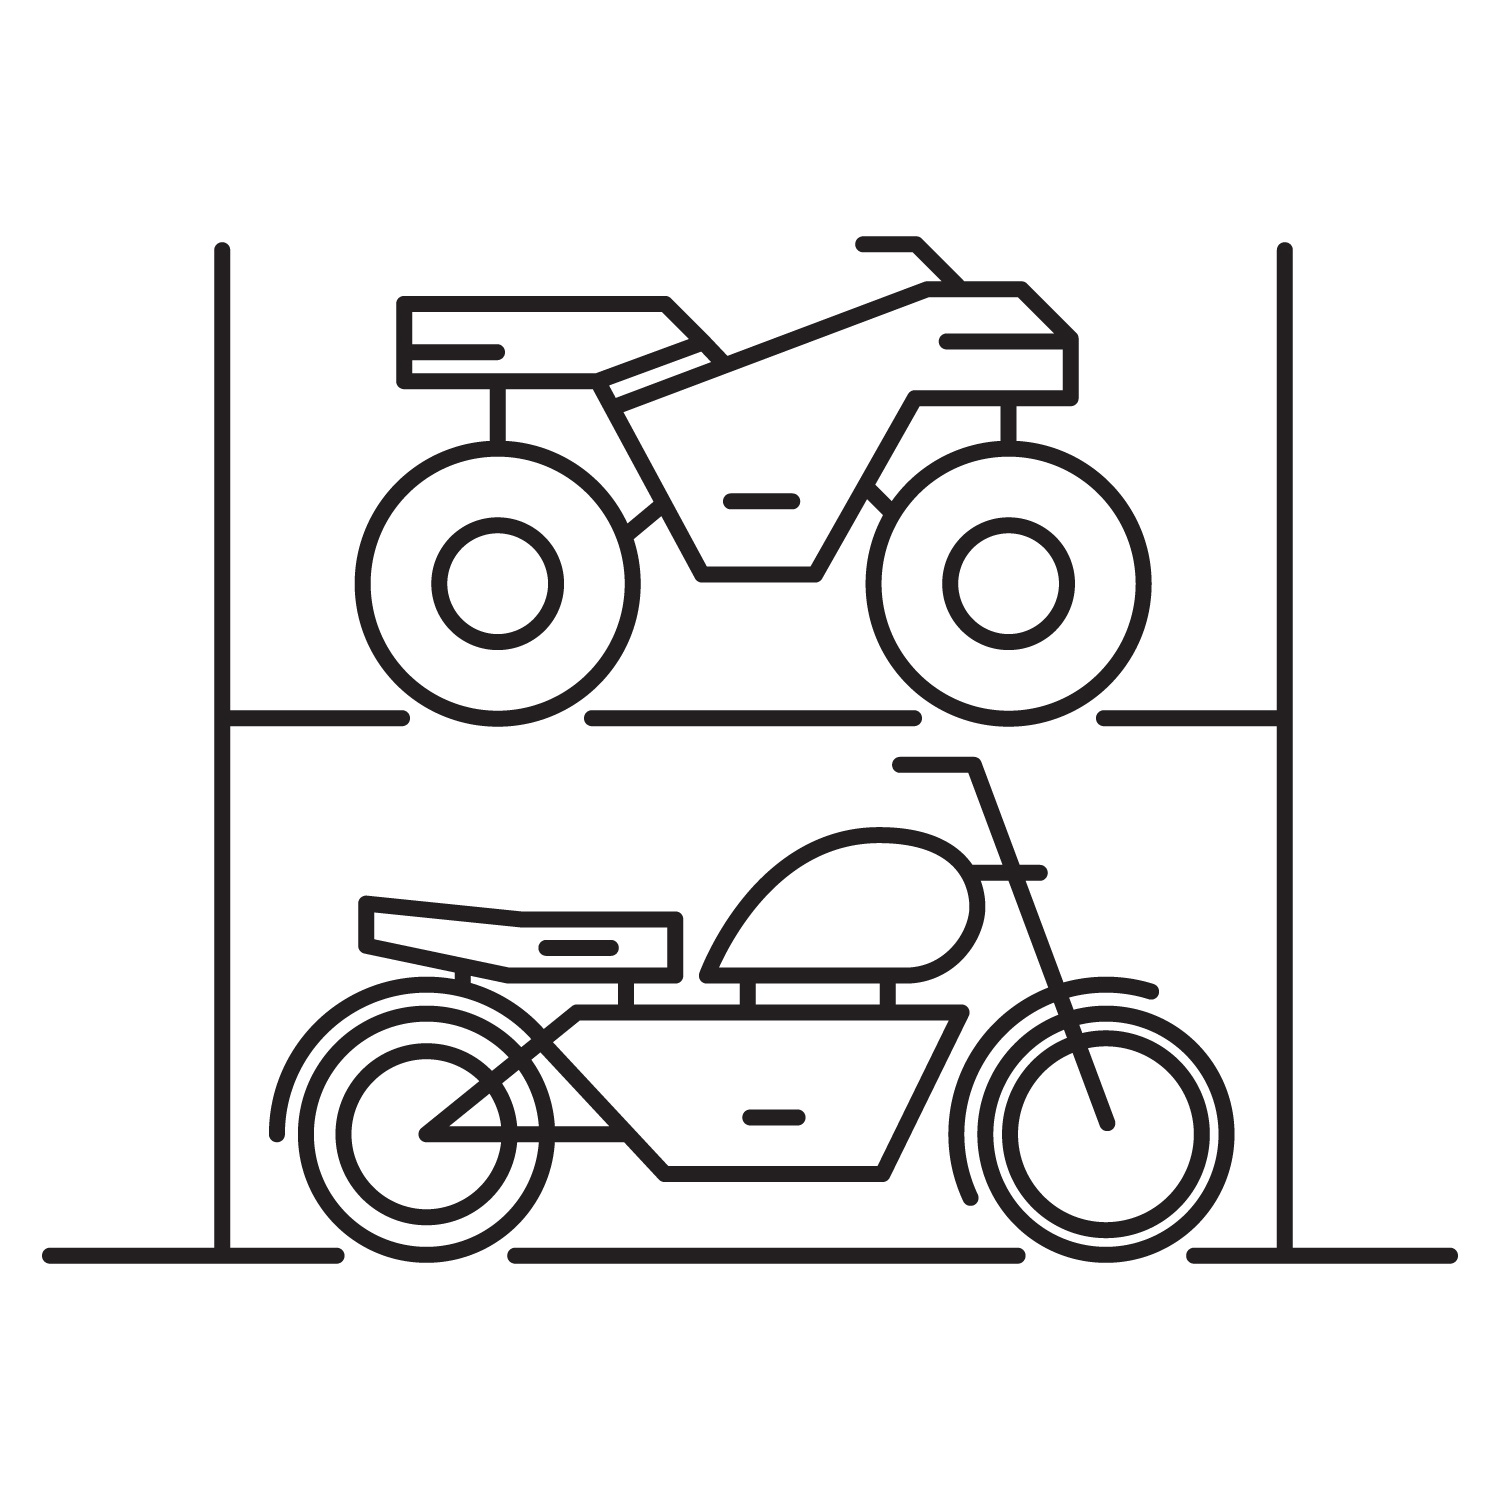 atv-motorcycle.jpg